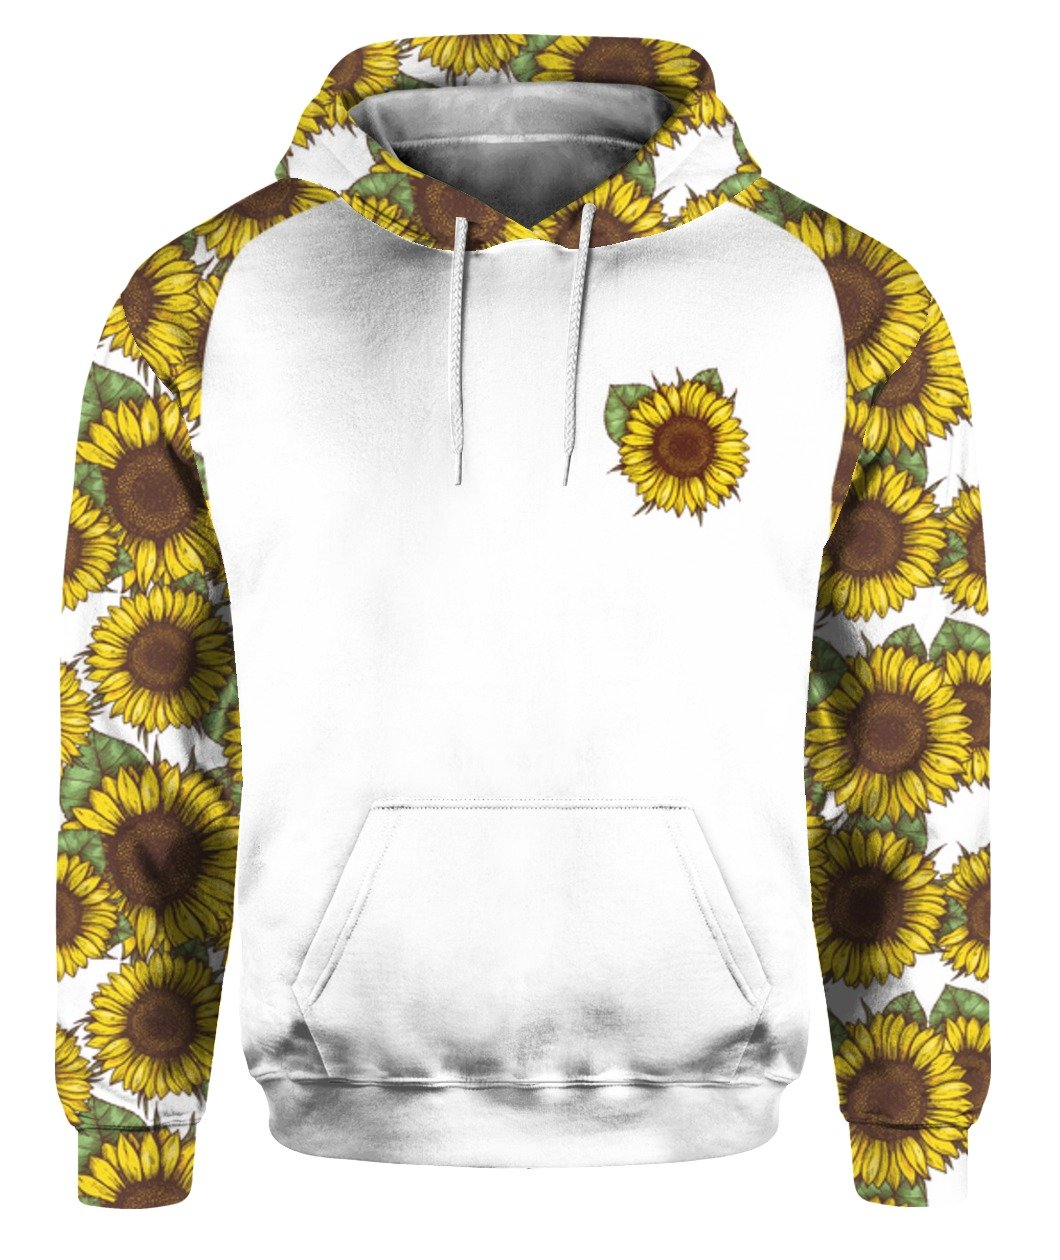 I'm blunt because god rolled me that way sunflower all over print hoodie 1